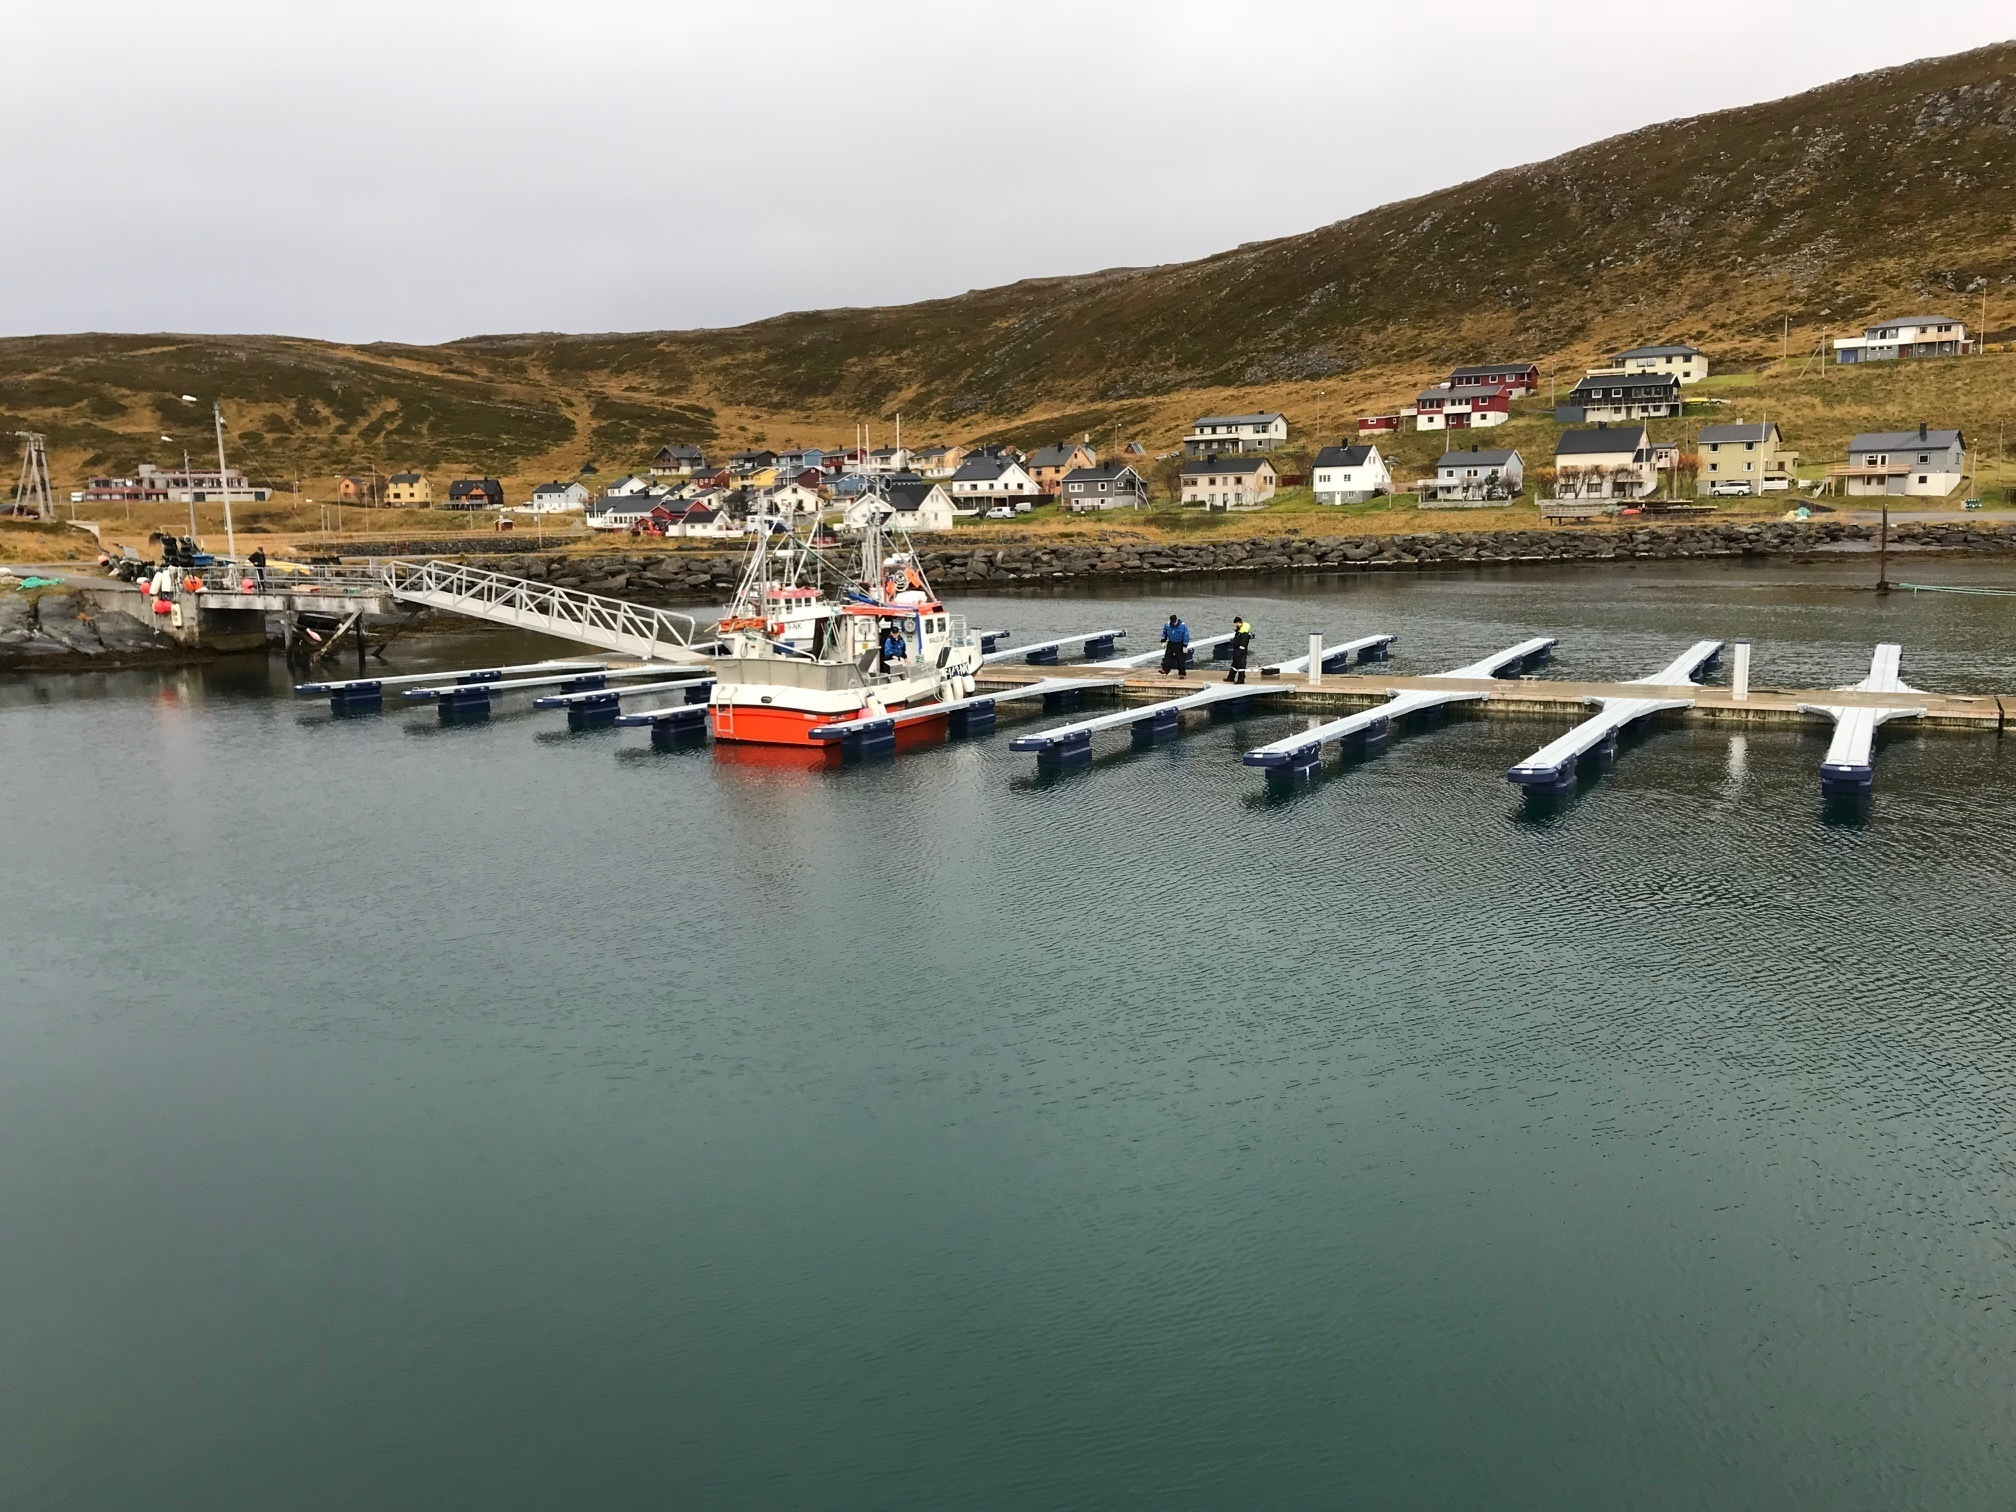 https://marinasolutions.no/uploads/Nordkappregionen-havn-Skarsvåg-2018-5.jpg